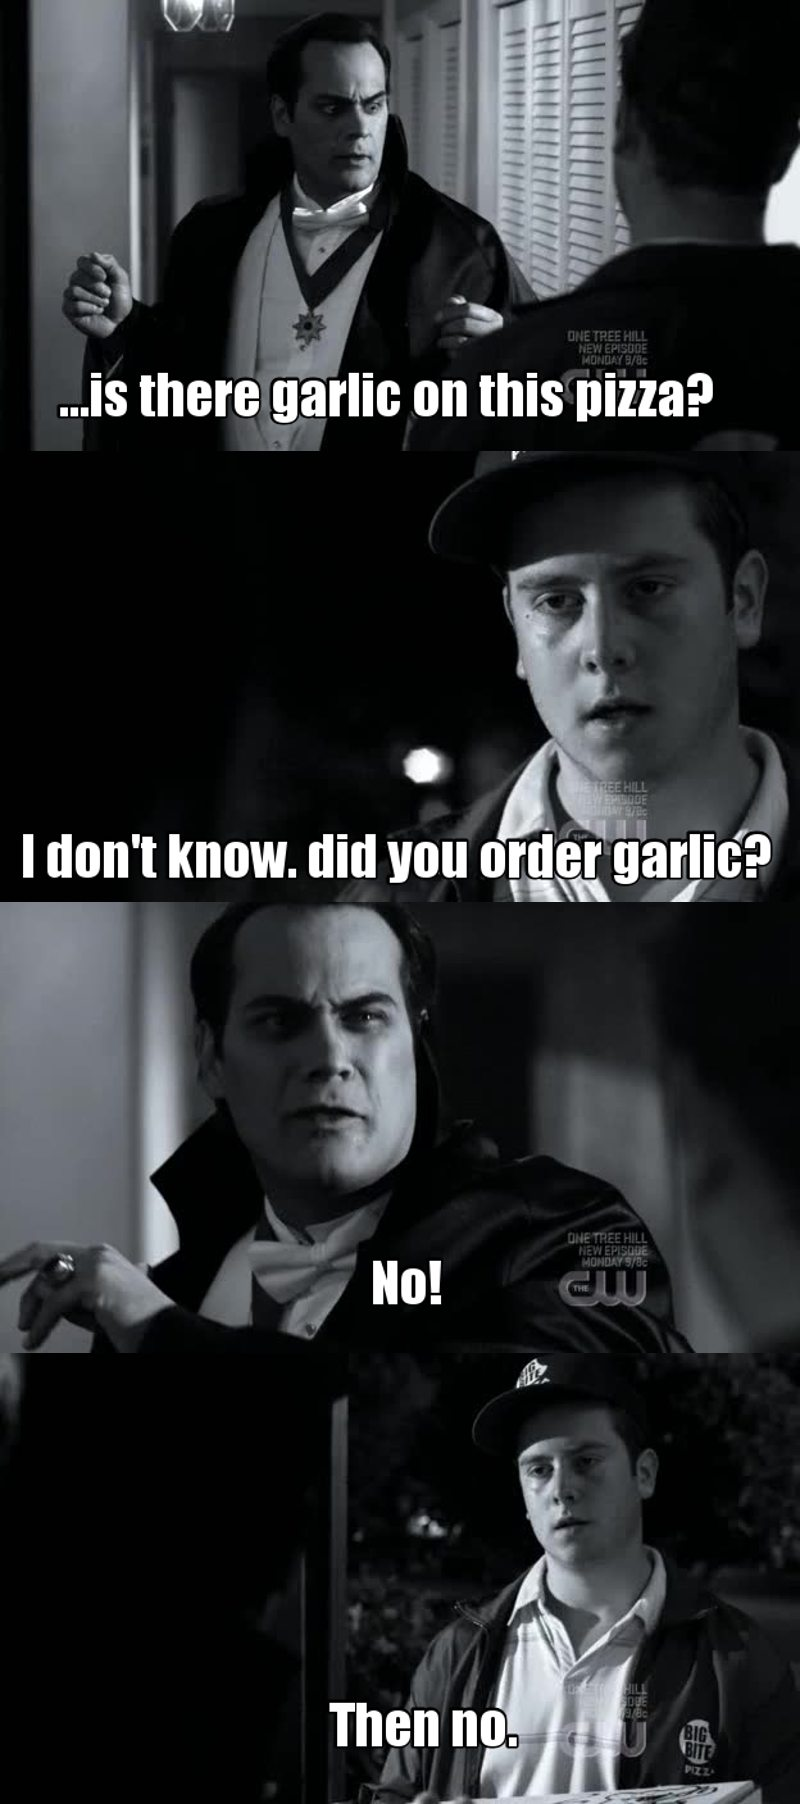 Haven't seen the episode but couldn't resist to make a meme on the vampire/pizza delivery moment! Hilarious...